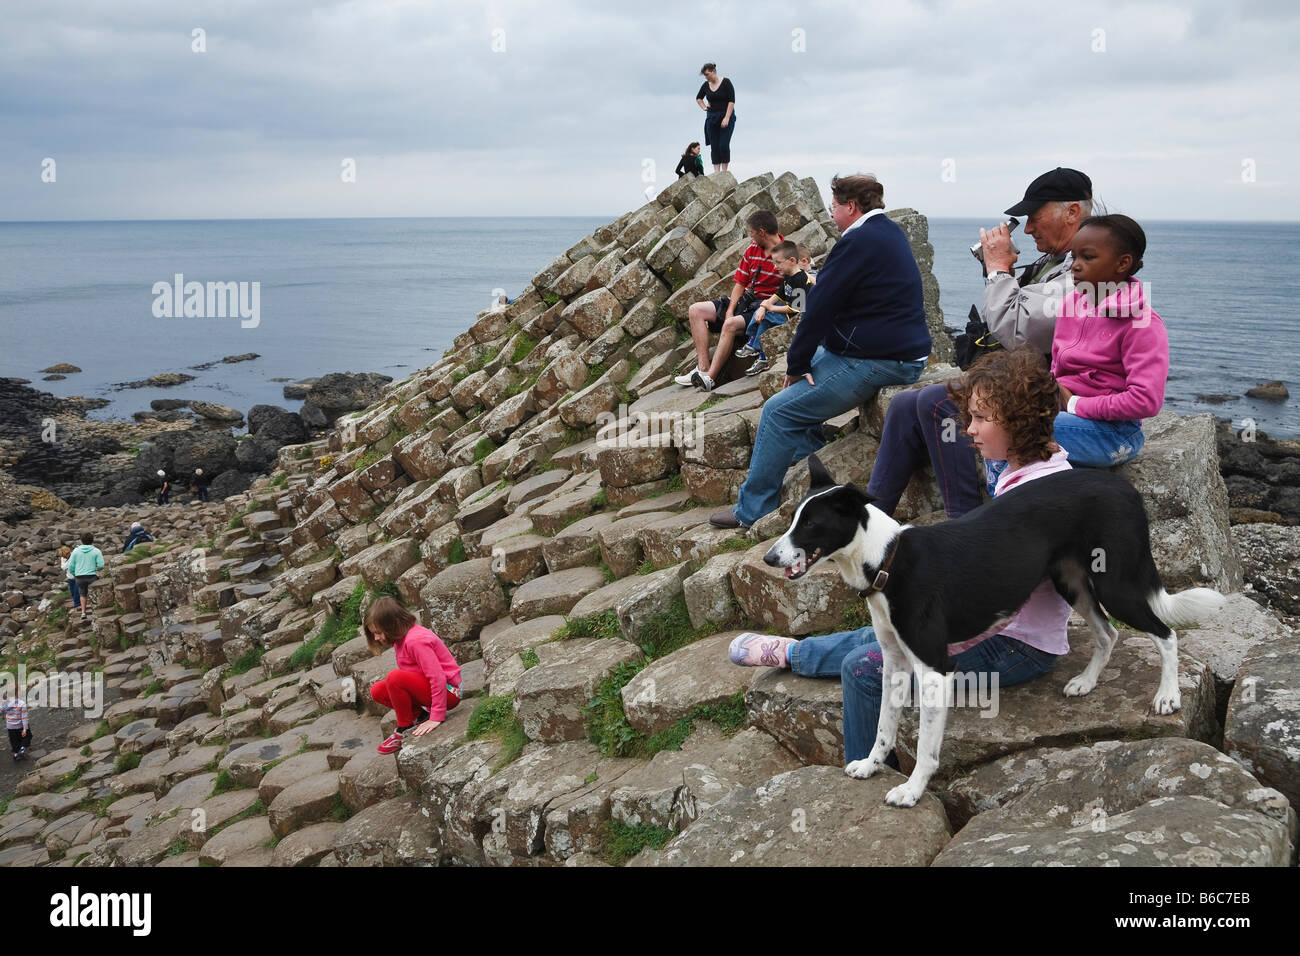 Tourists at the Giant's Causeway, County Antrim, Northern Ireland - Stock Image